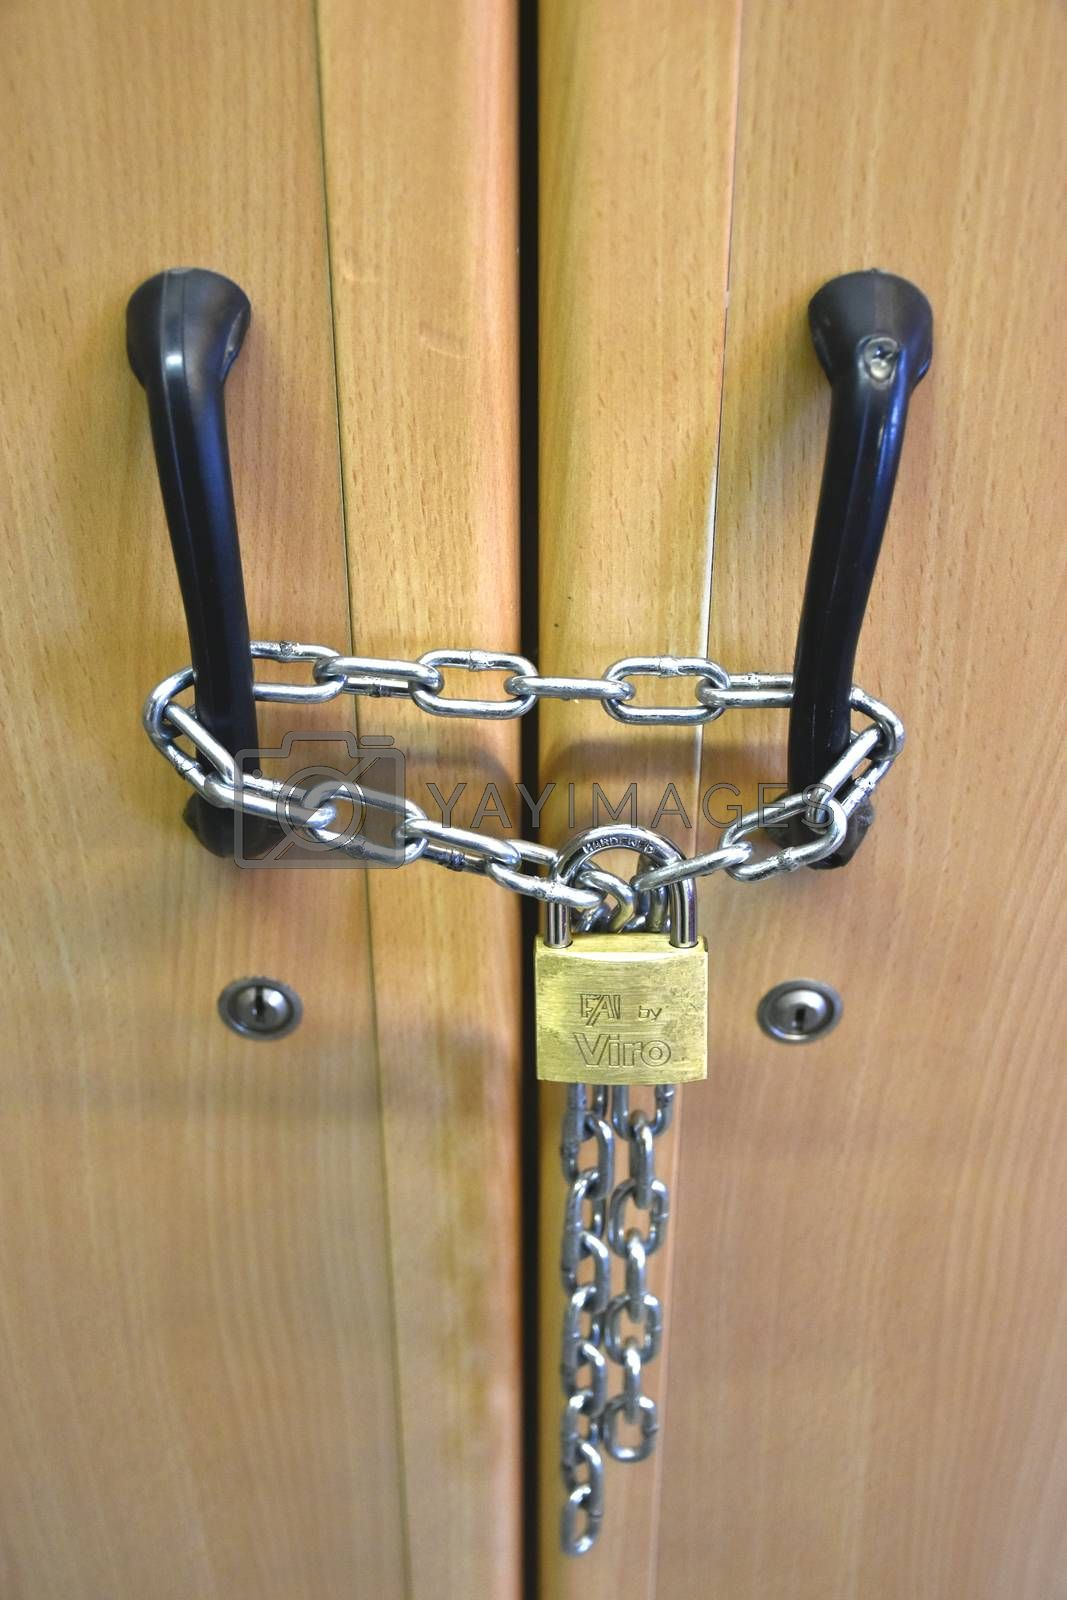 The photo represents a lock that close two doors.